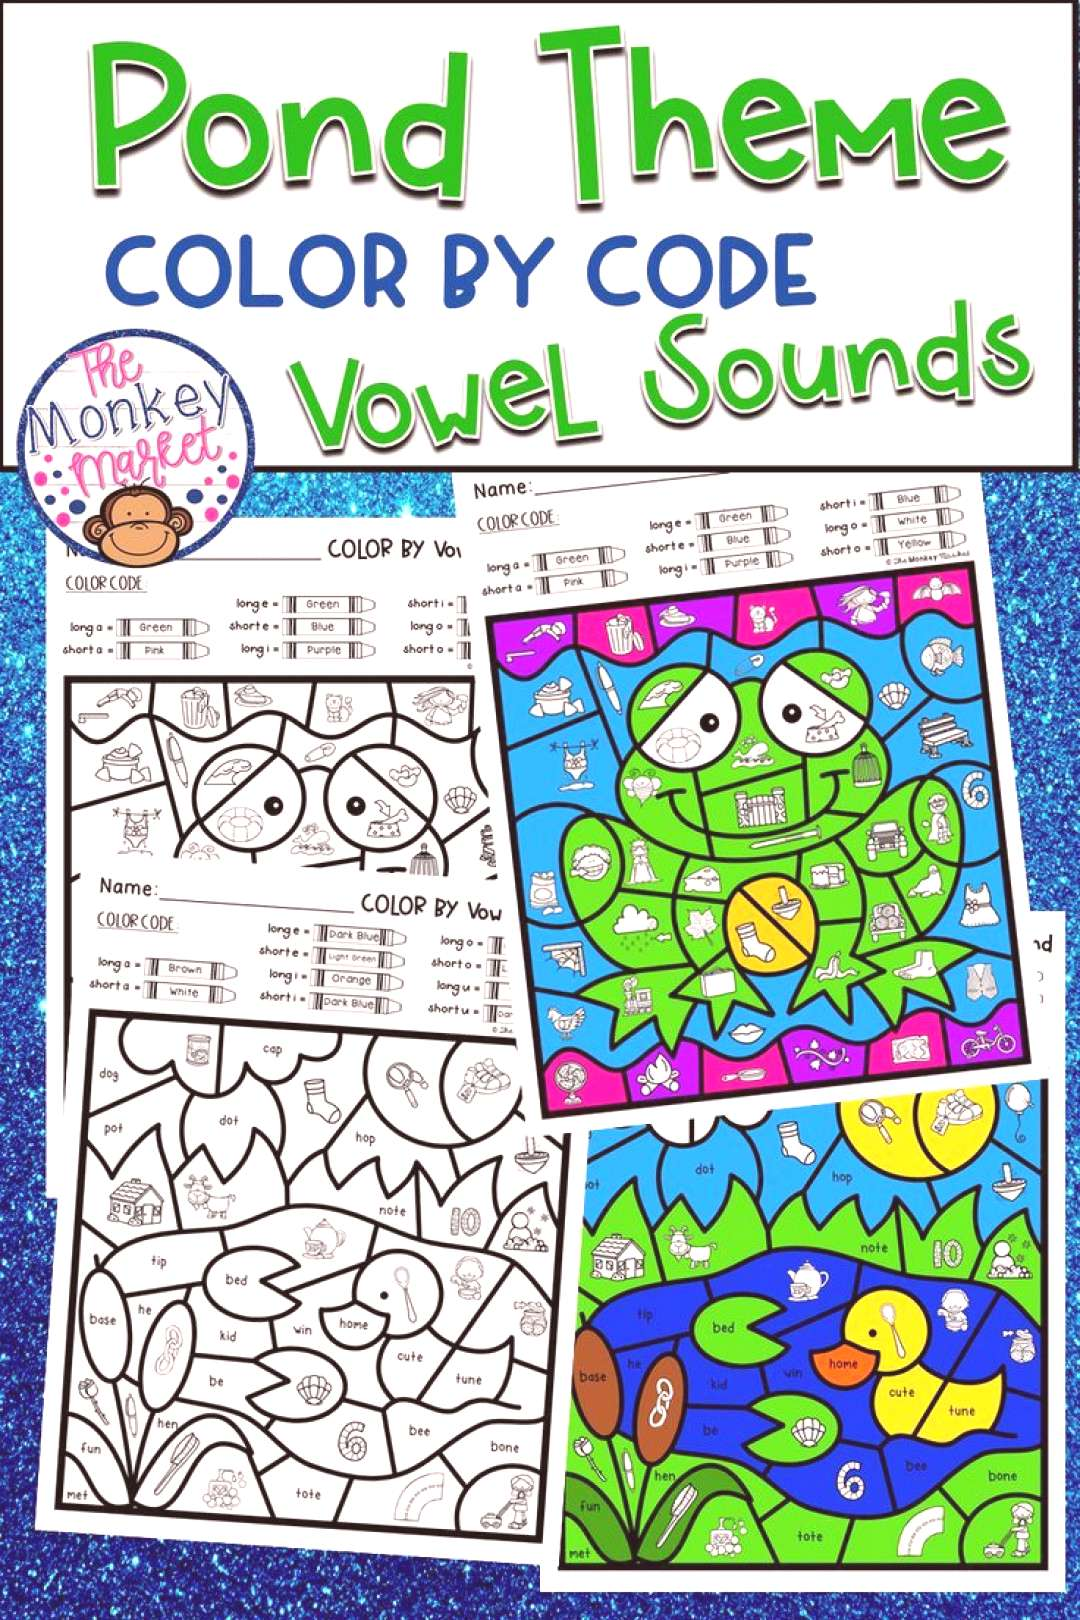 Color By Code Vowel Sounds - Pond These Pond Theme Color By Code worksheets are great for students